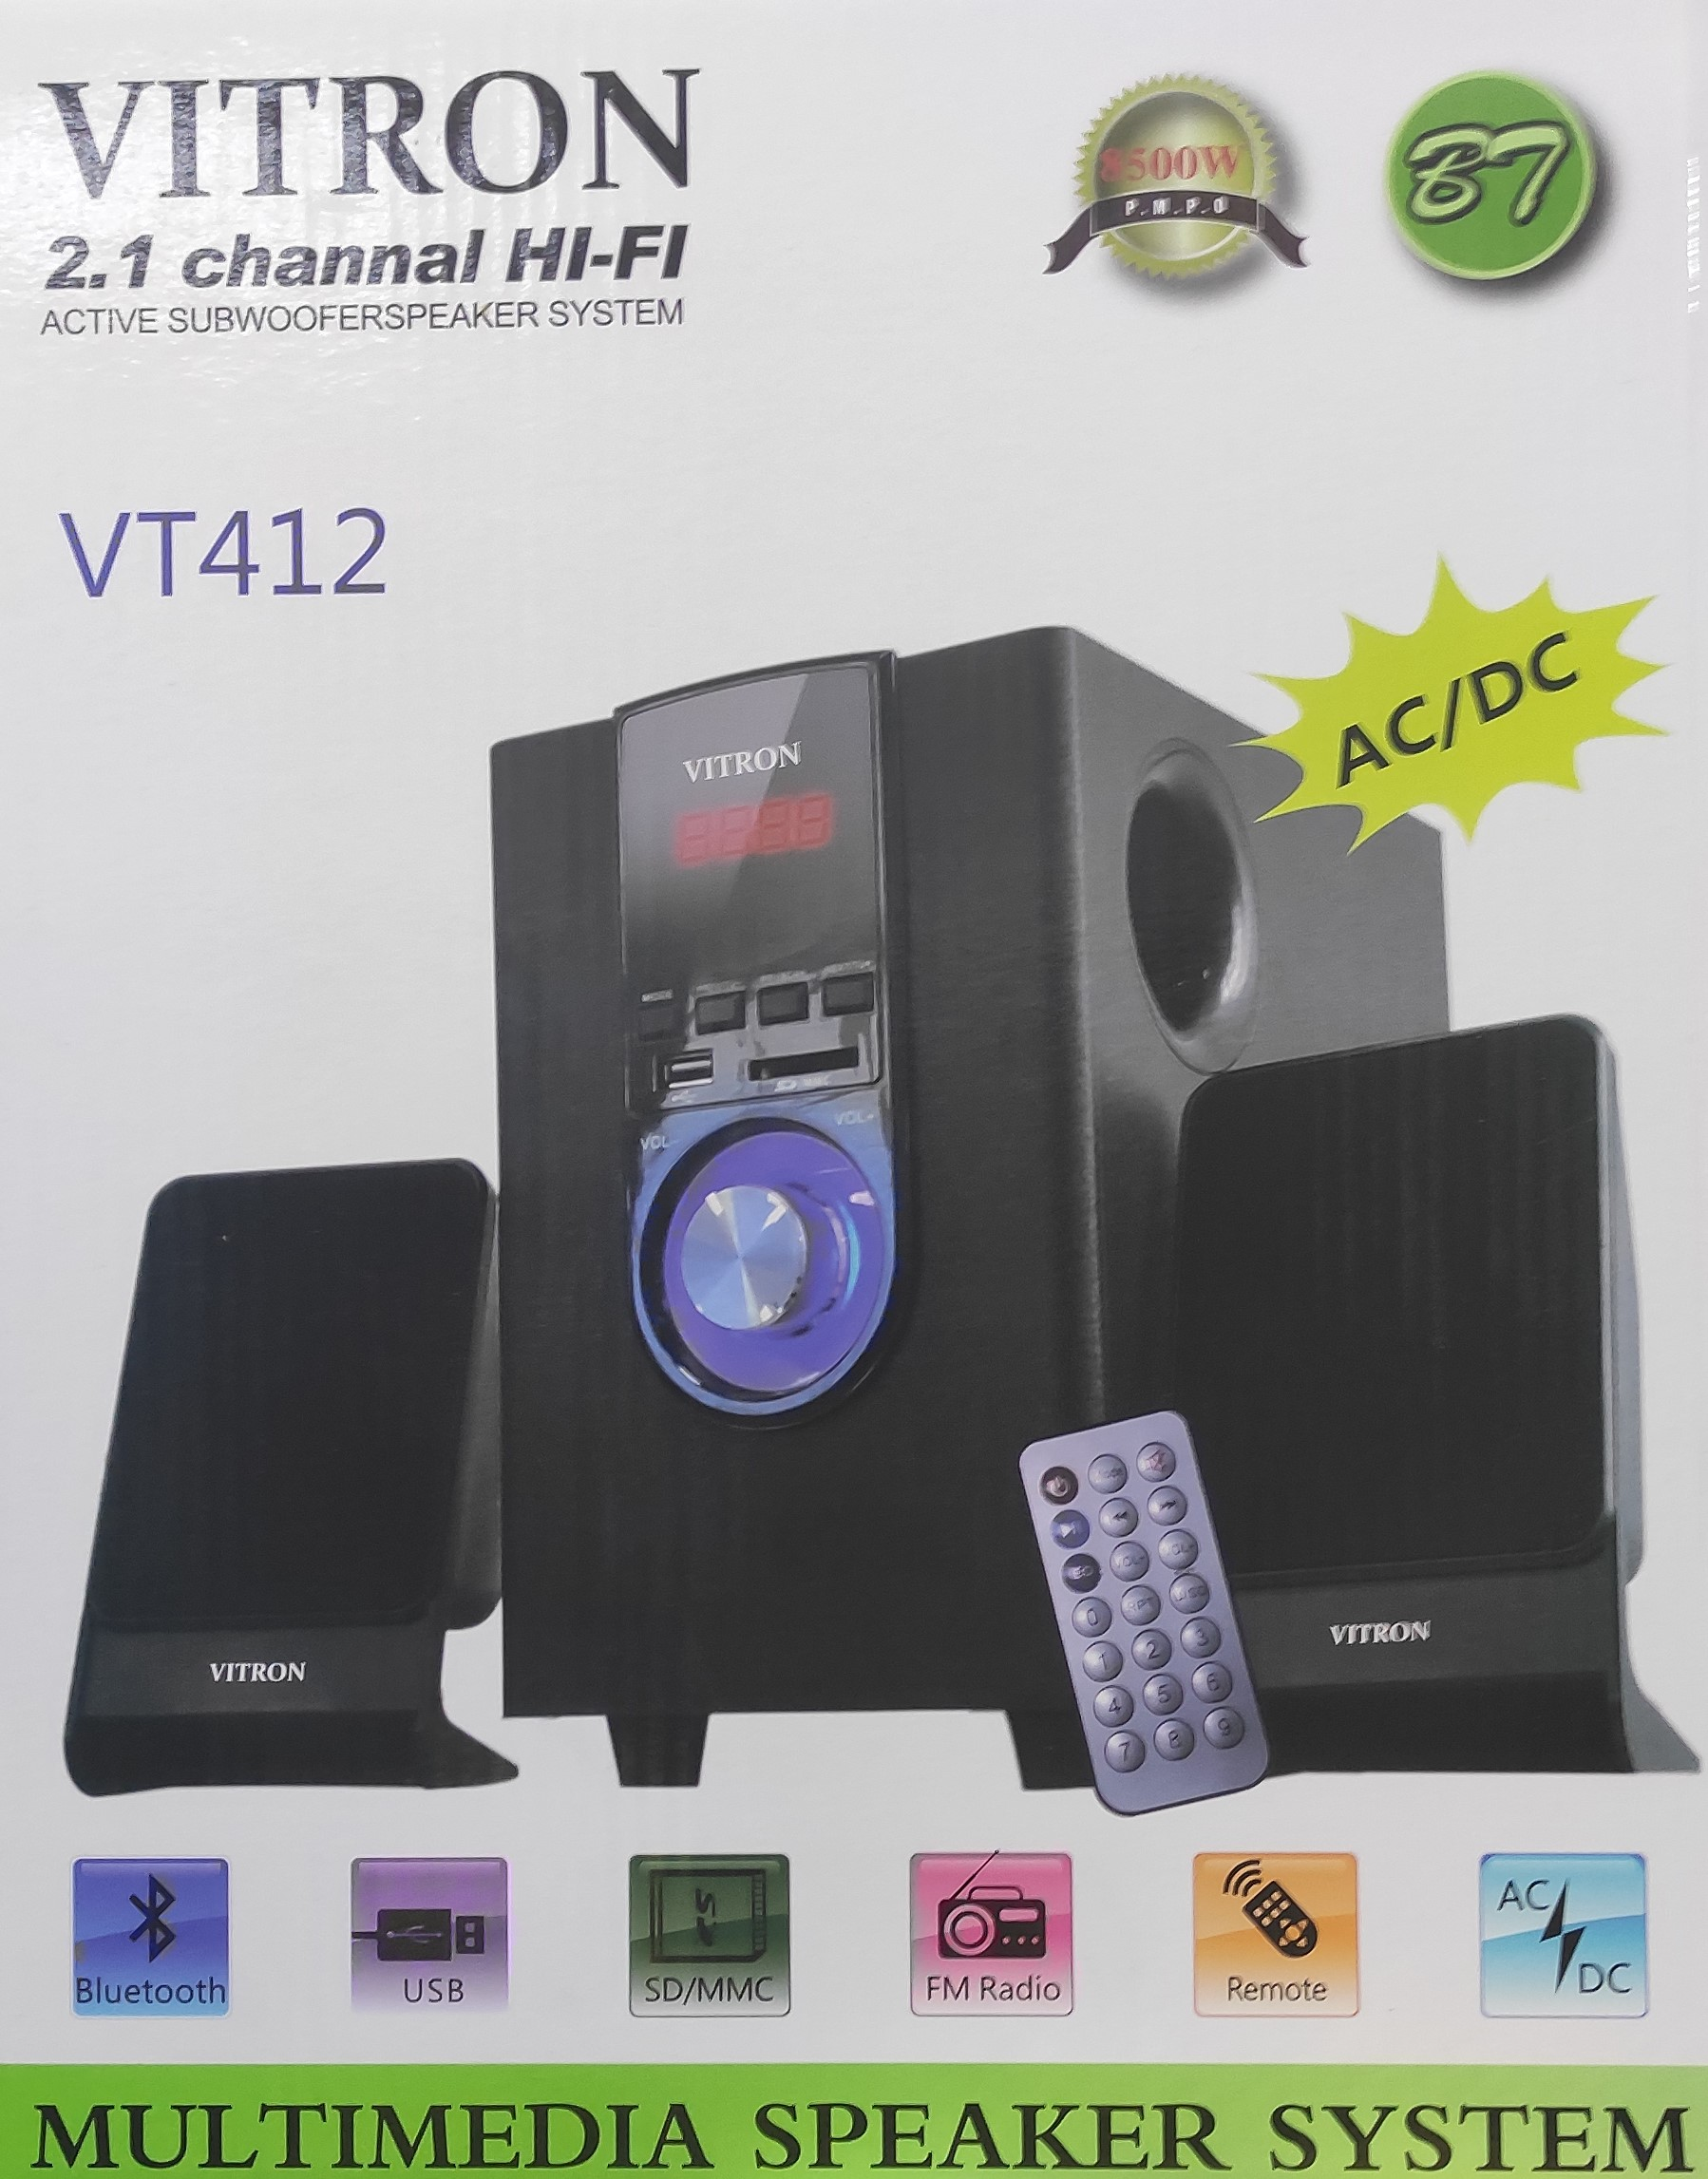 Vitron VT412 2.1chanel multimedia speaker system